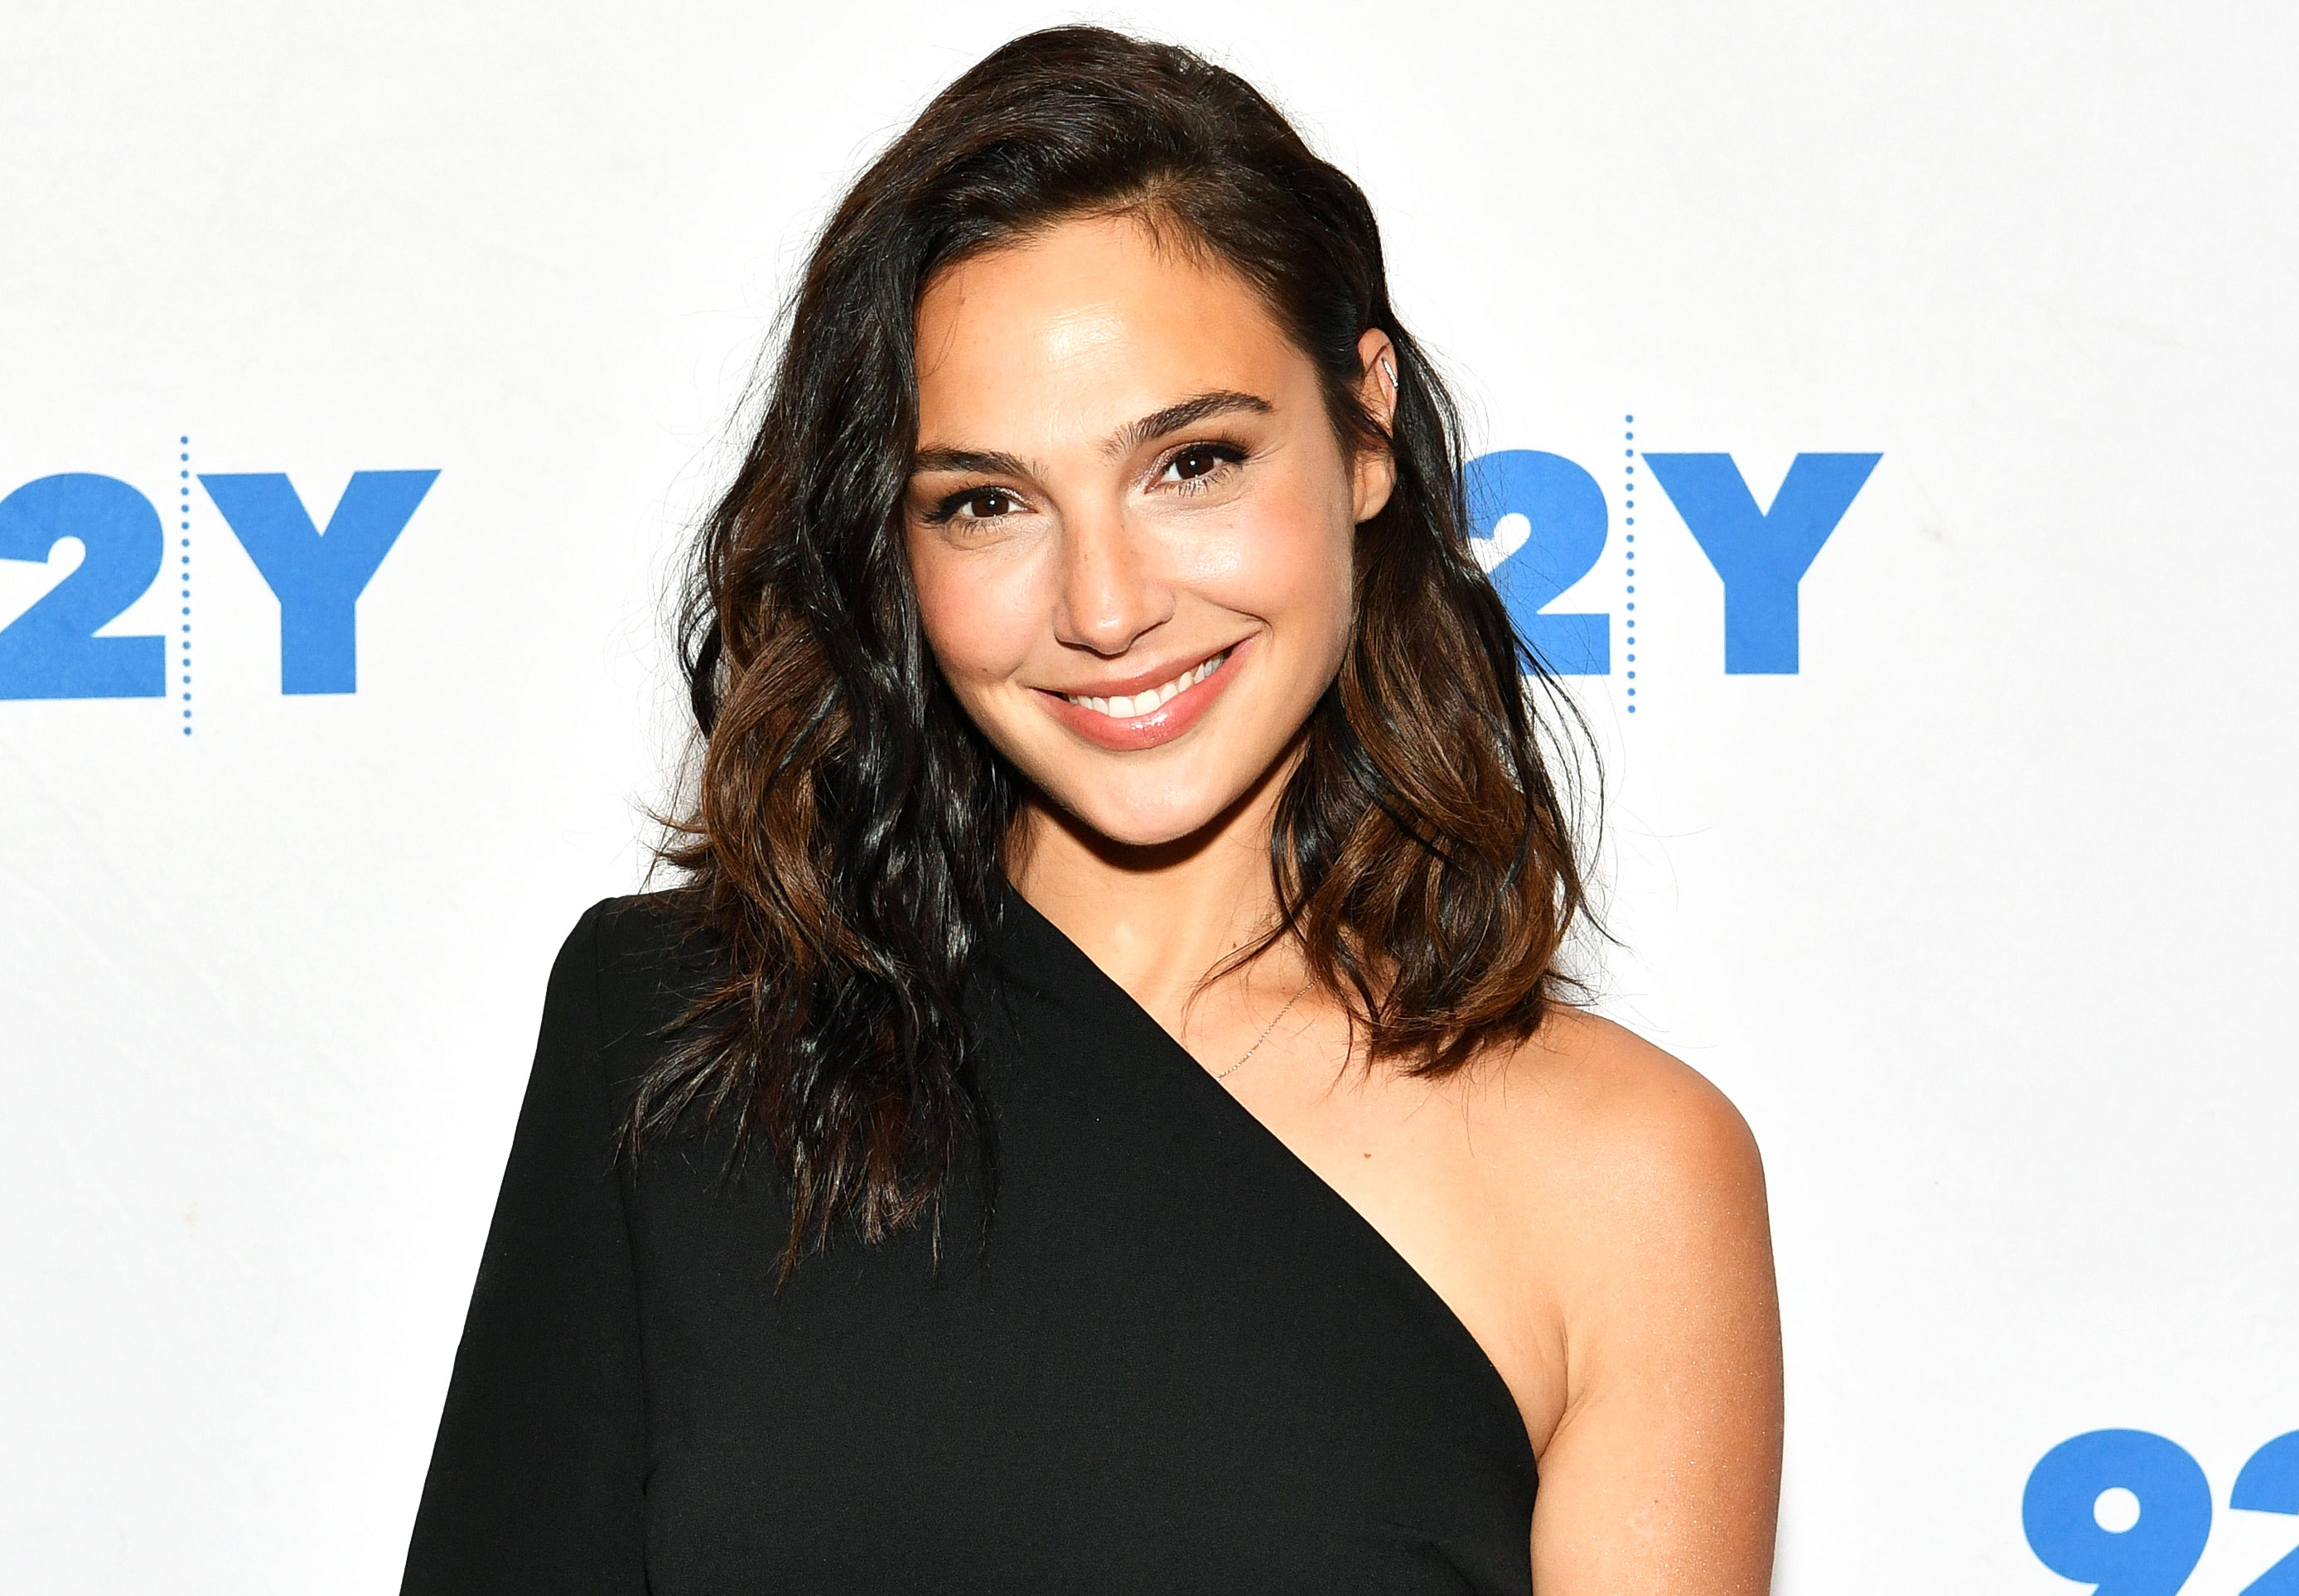 Gal Gadot Hair Is Trendy Superpower Gal Gadot Hair Is Trendy Superpower new photo